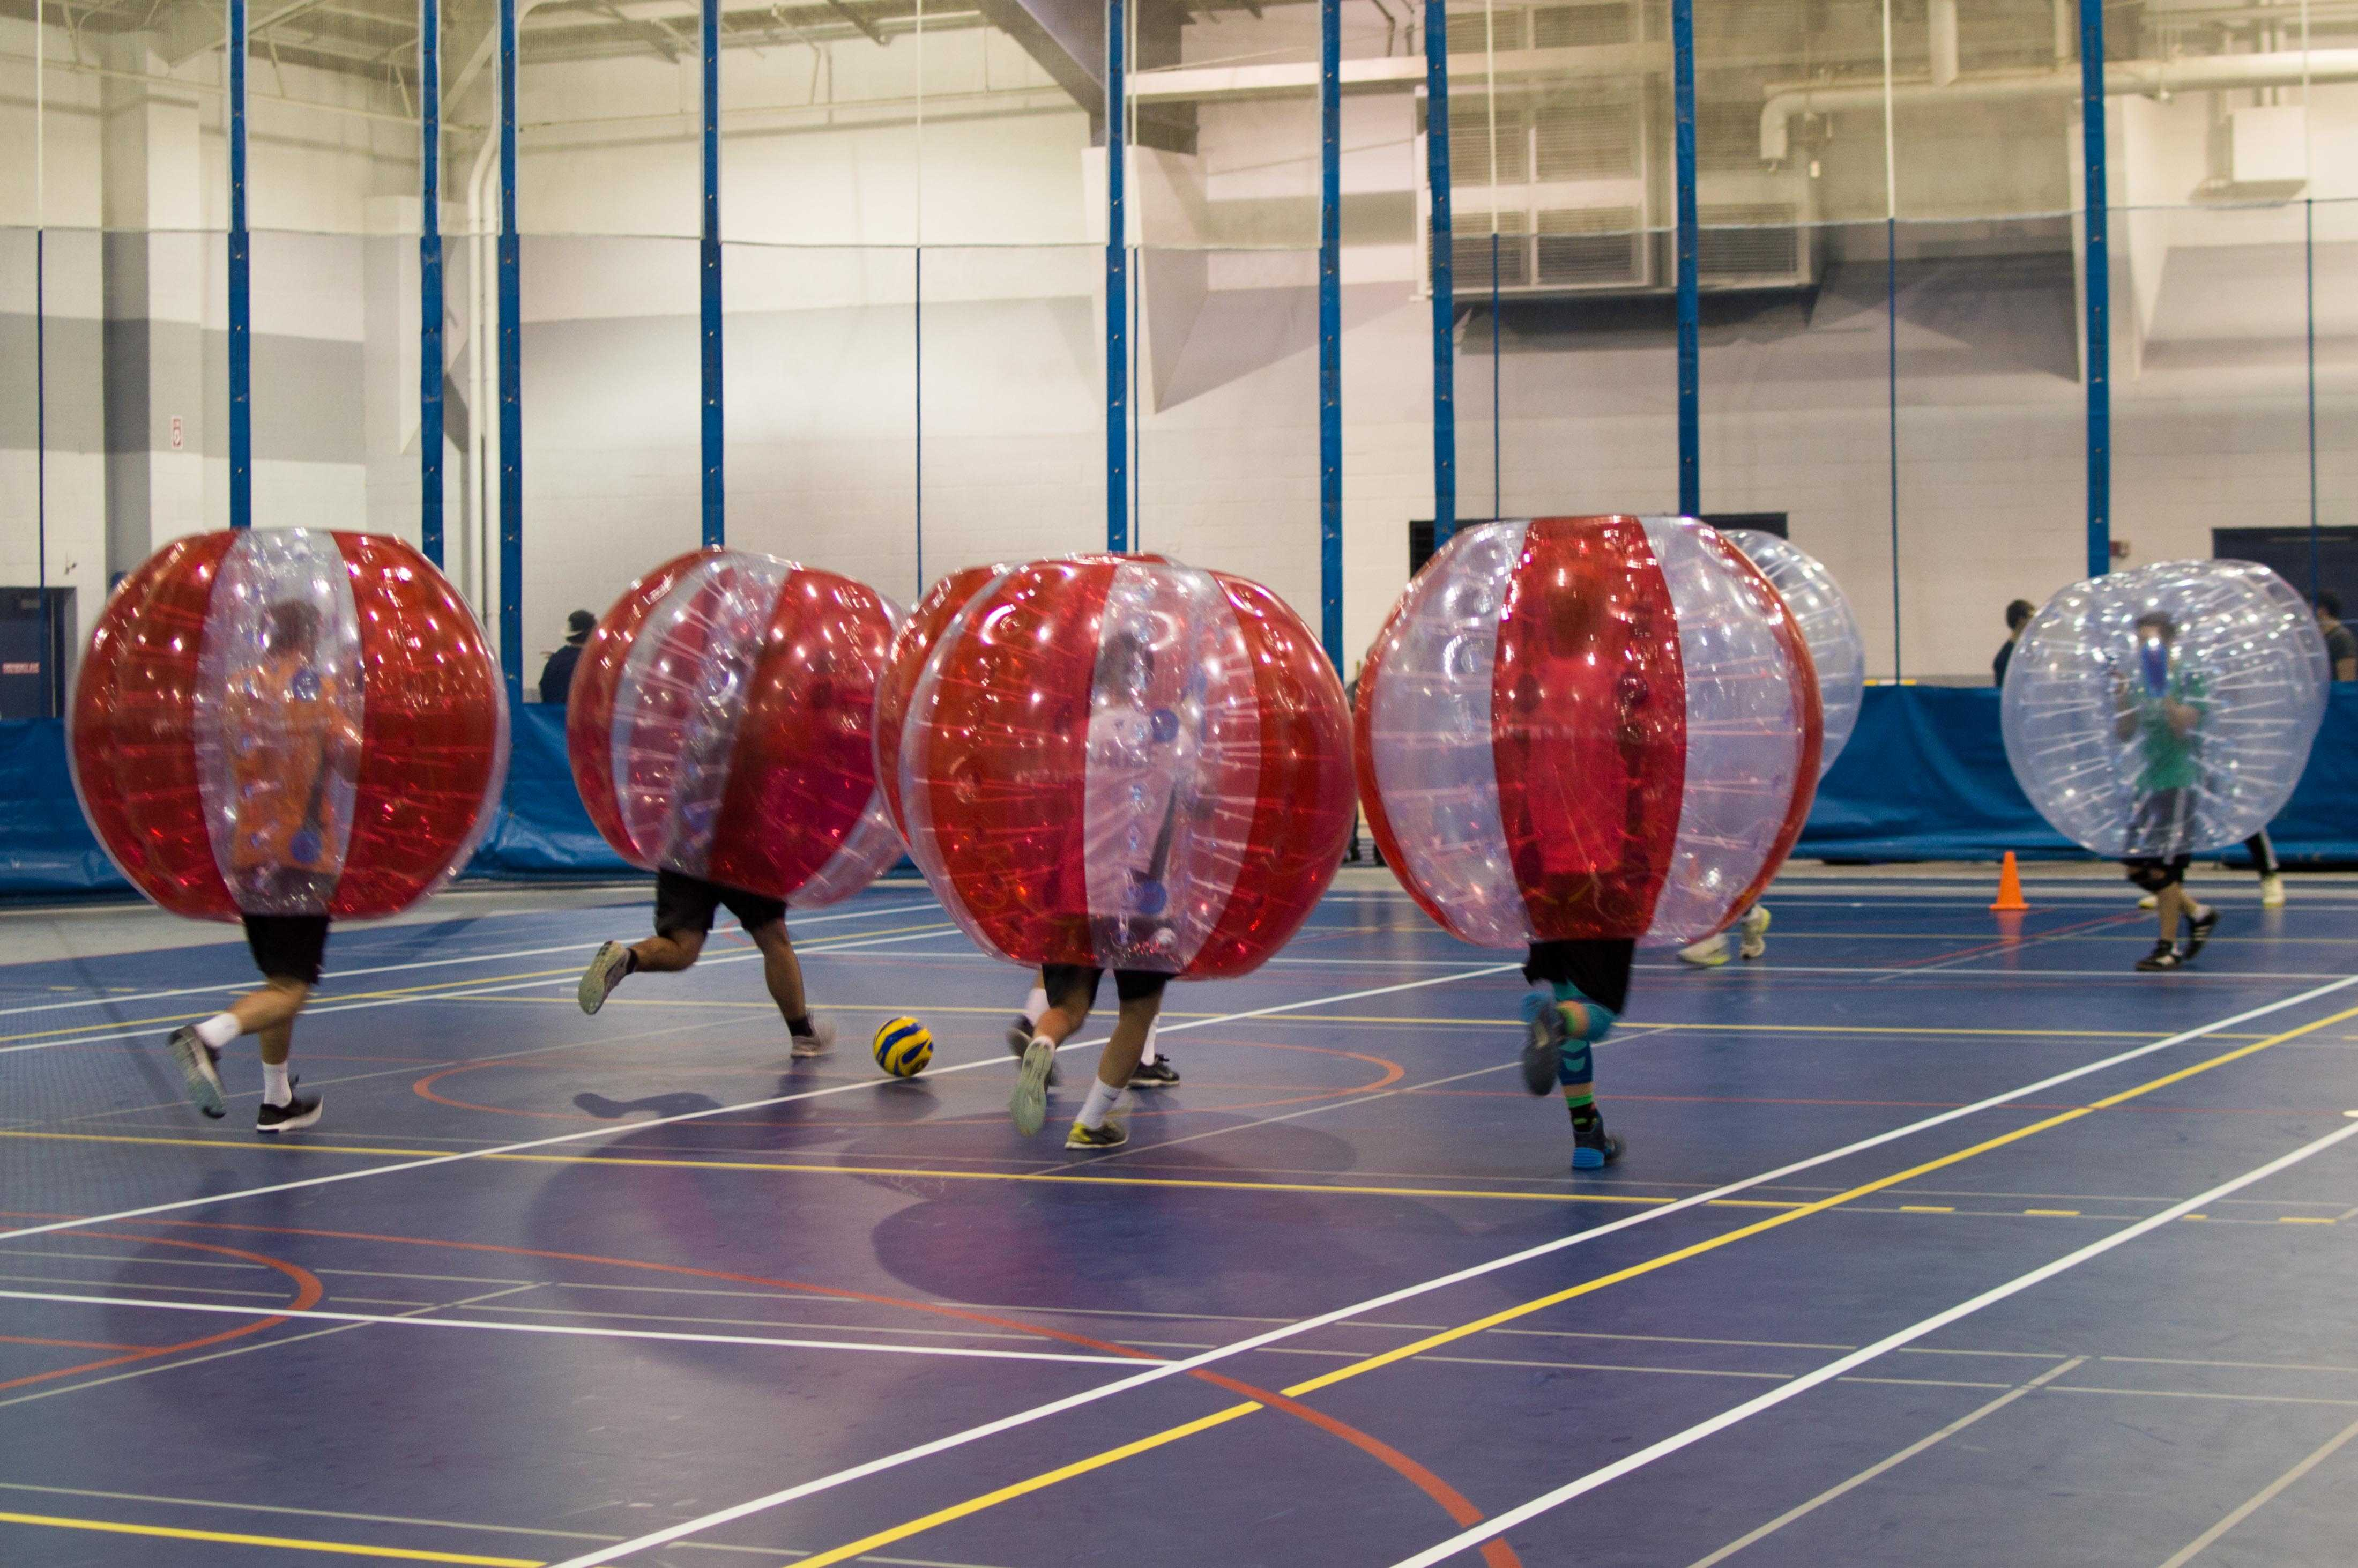 UPB brought the fad sport of Bubble Soccer to campus for a casual, fun, and bouncy take on the classic sport.